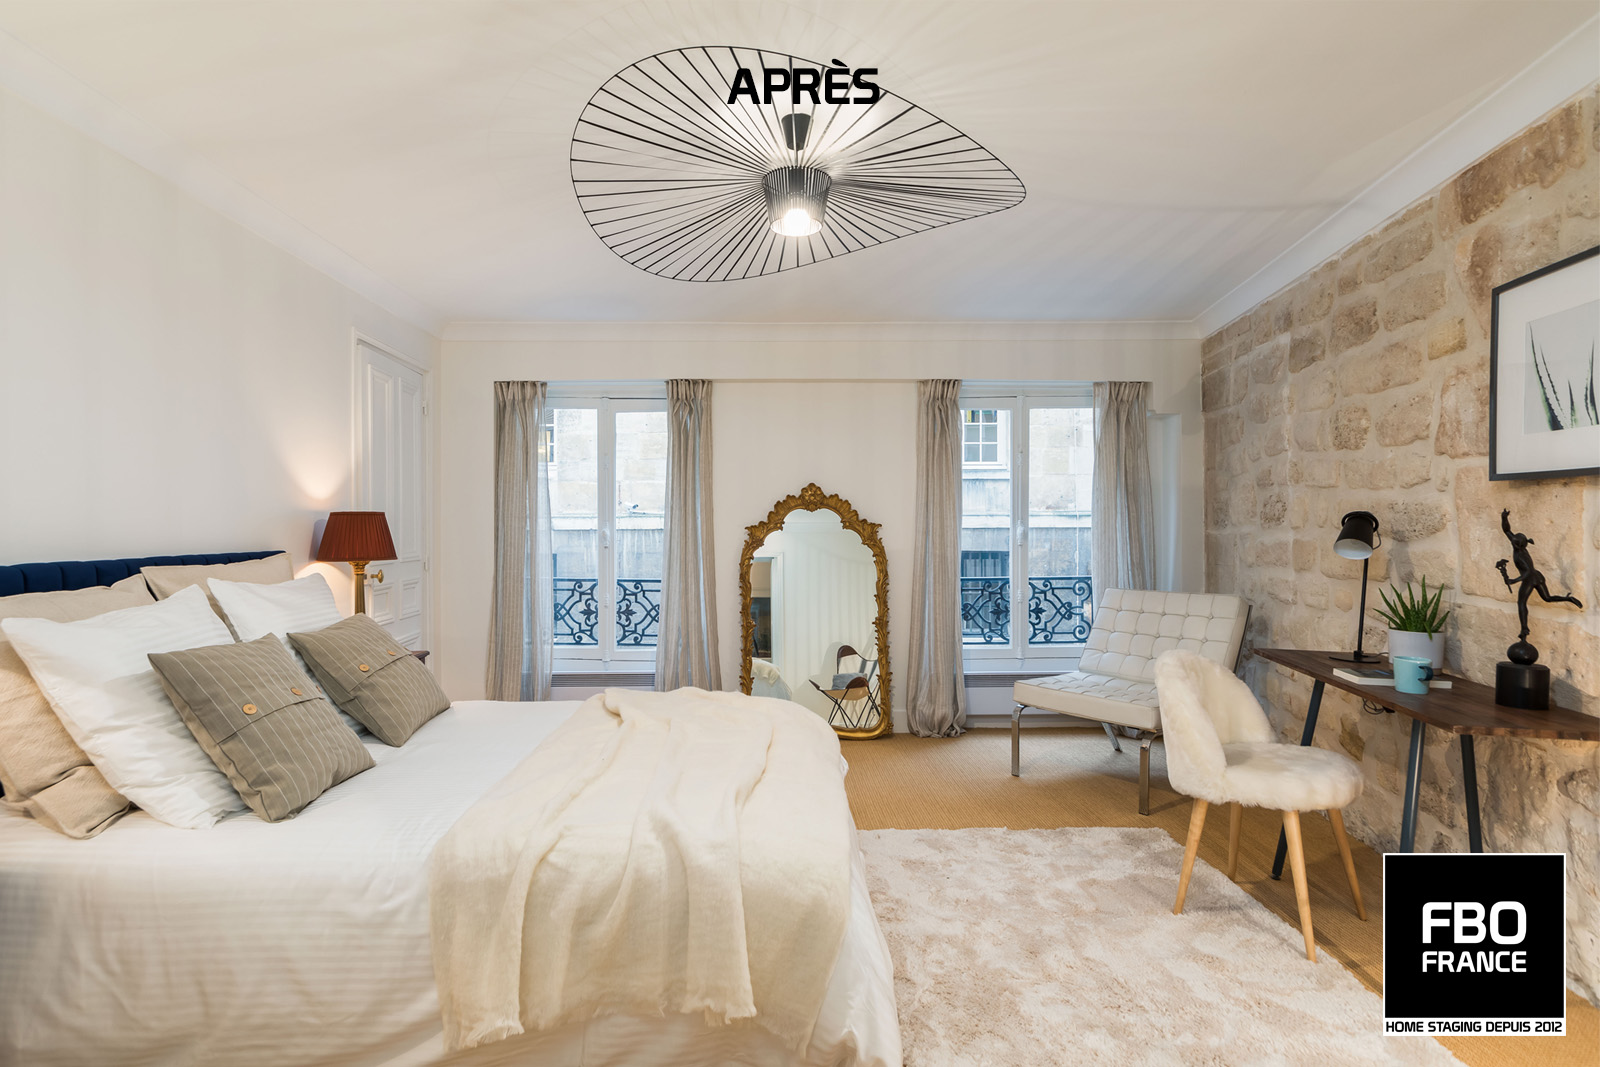 apres-home-staging-rennes